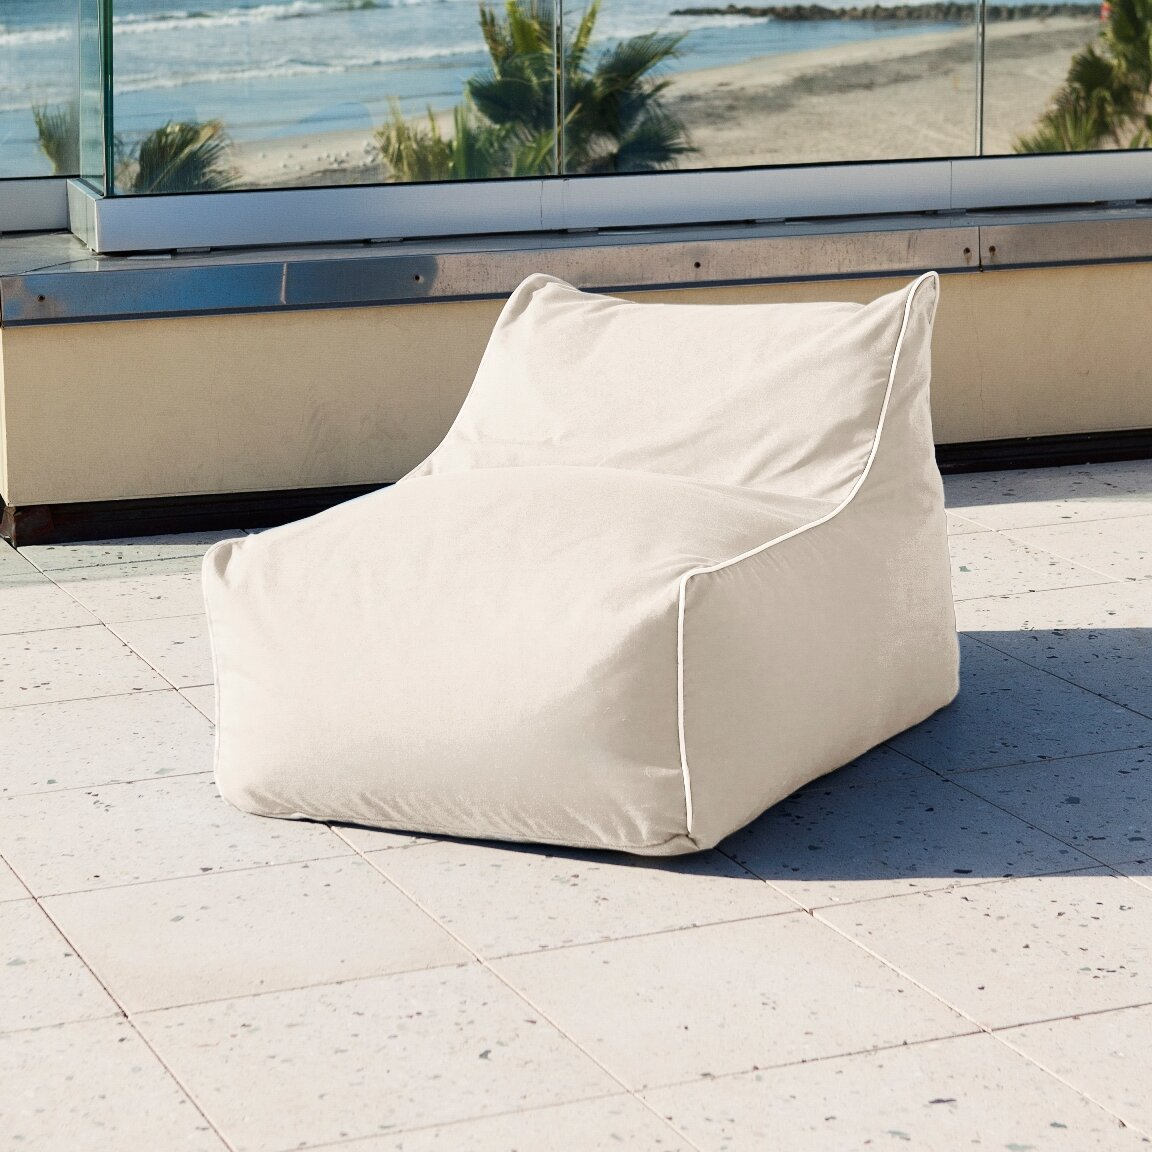 - Hip Chik Chairs Sunbrella Kids Bean Bag Lounger Wayfair